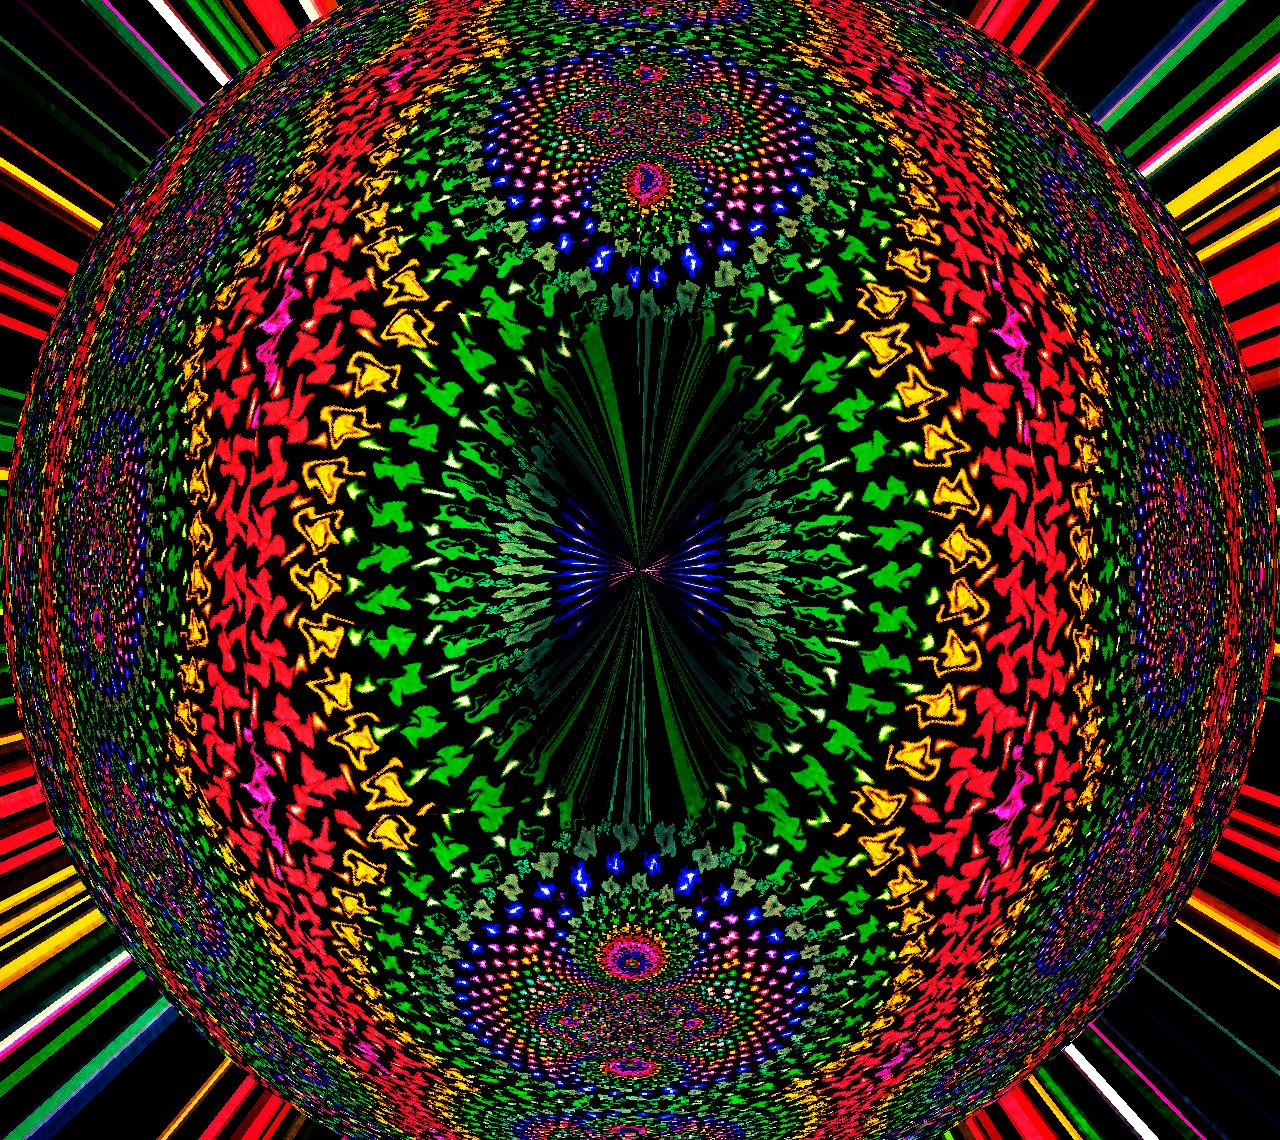 Trippy Live Wallpaper: 3D Psychedelic Wallpaper